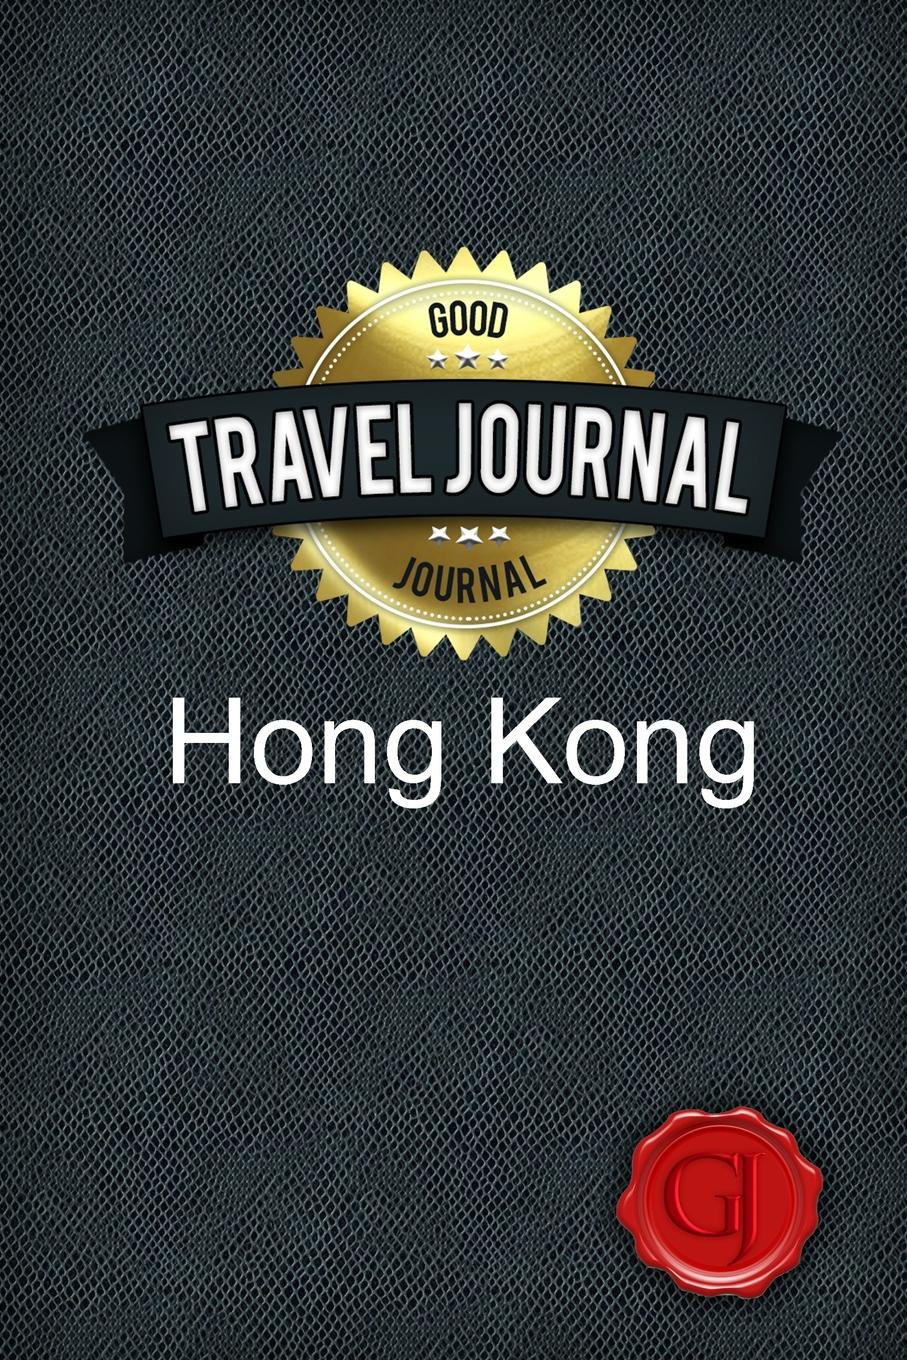 Good Journal Travel Journal Hong Kong vegetation hong 120